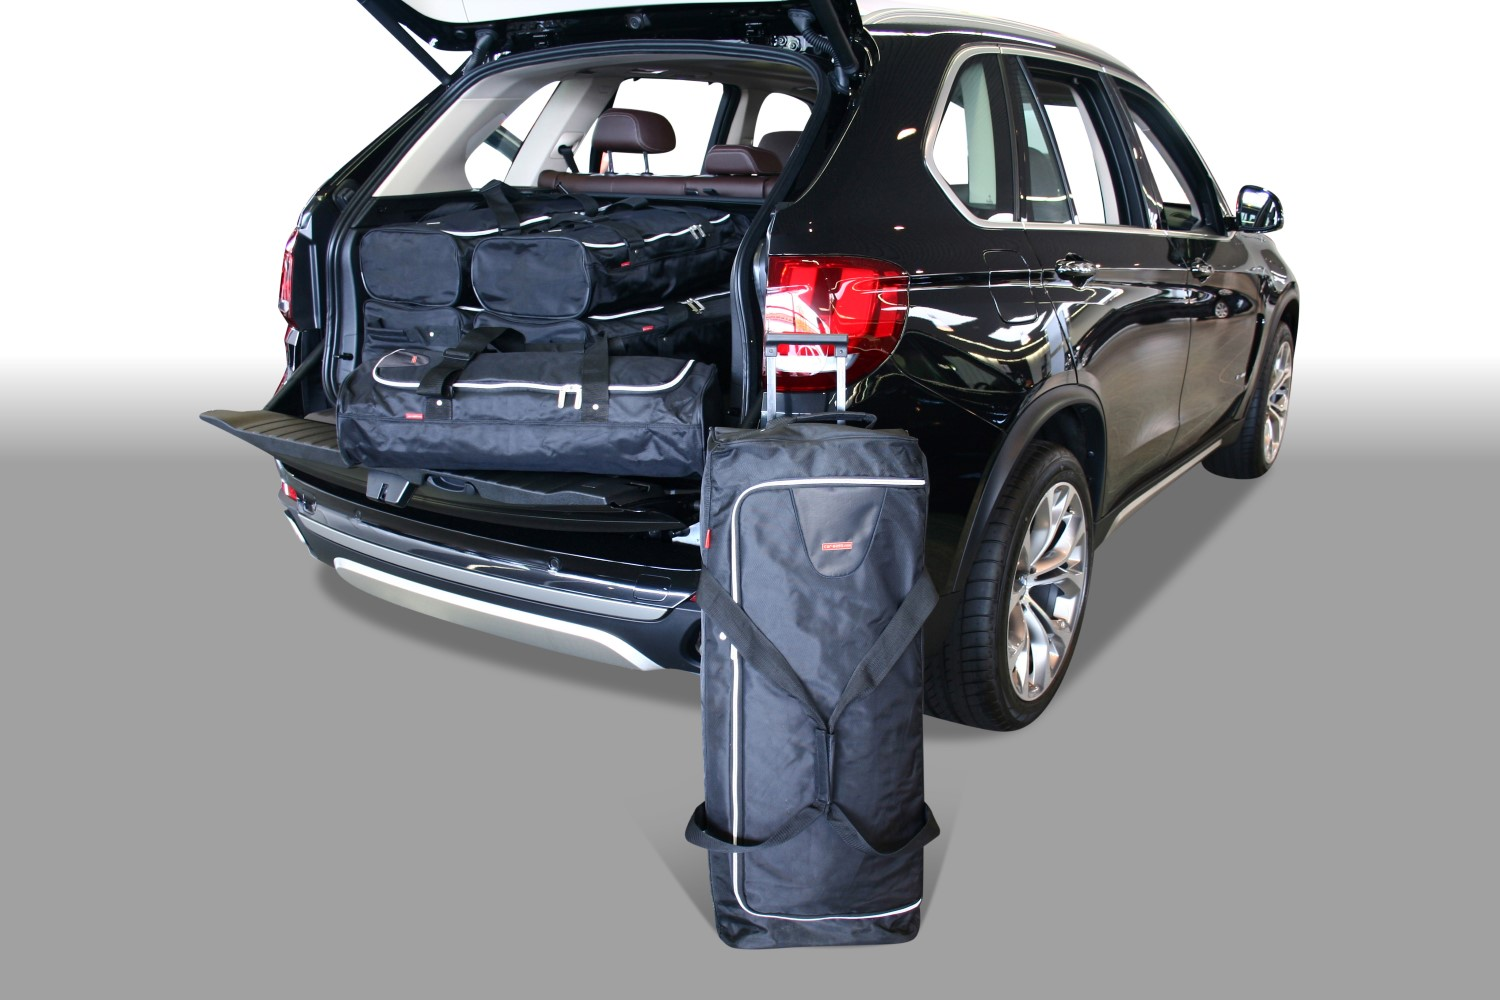 BMW X5 (F15) 2013-2018 Car-Bags.com travel bag set (1)